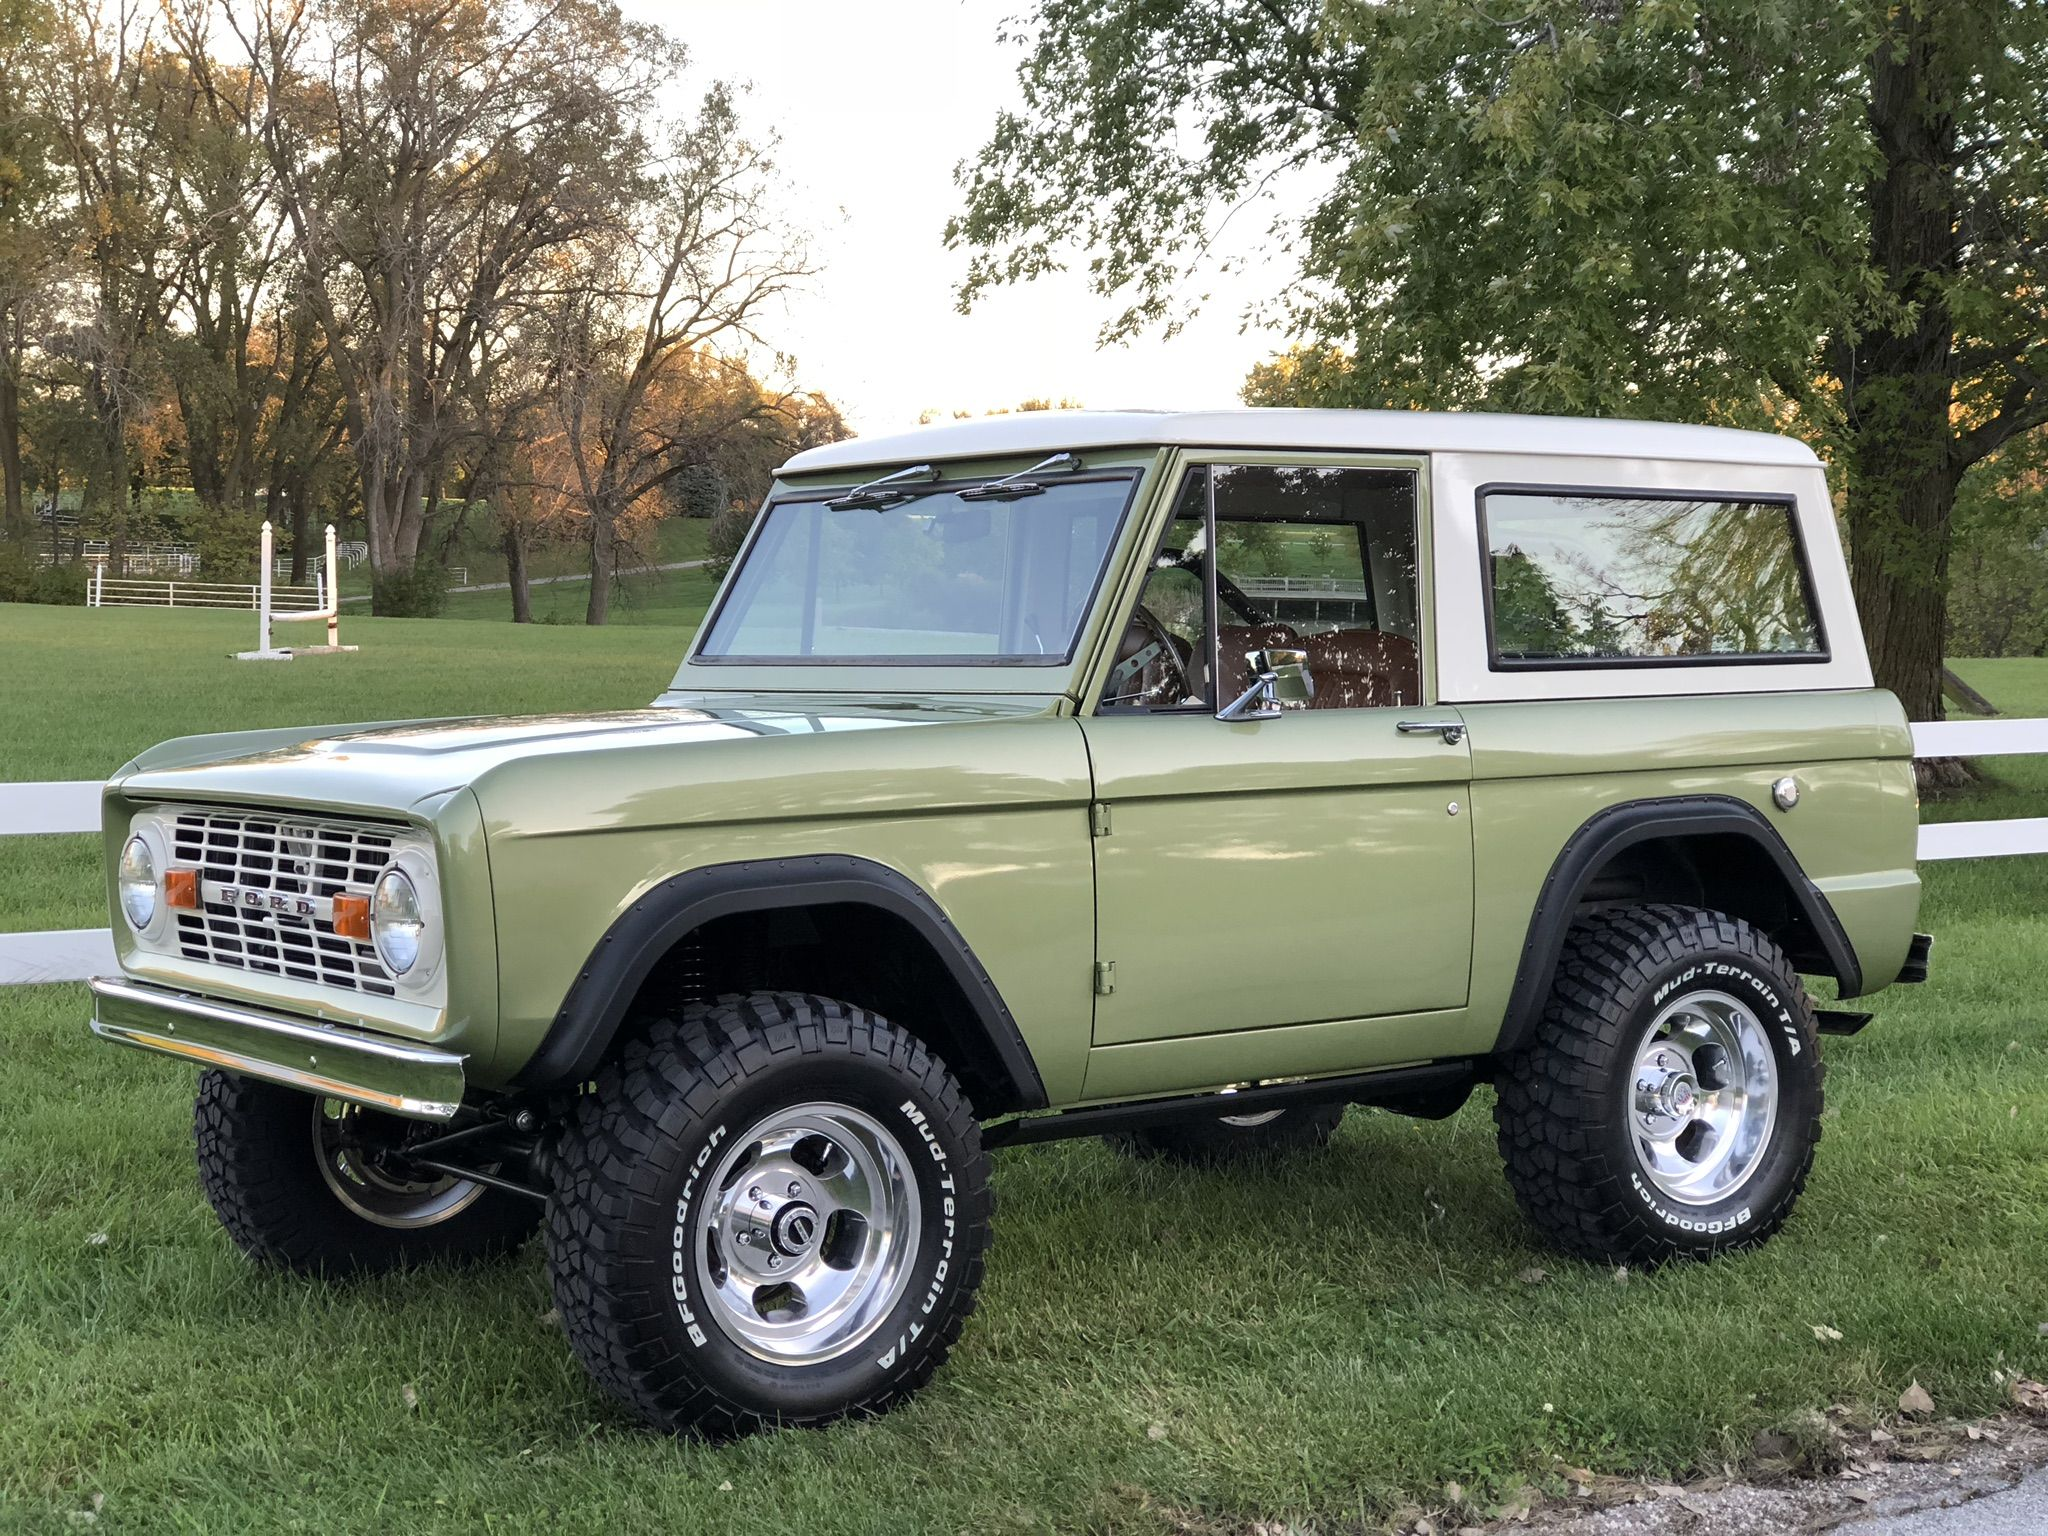 1974 Ford Bronco Awesome Build By Dude S Modern Built Classics In Valdosta Ga Ford Bronco Ford Trucks Classic Trucks